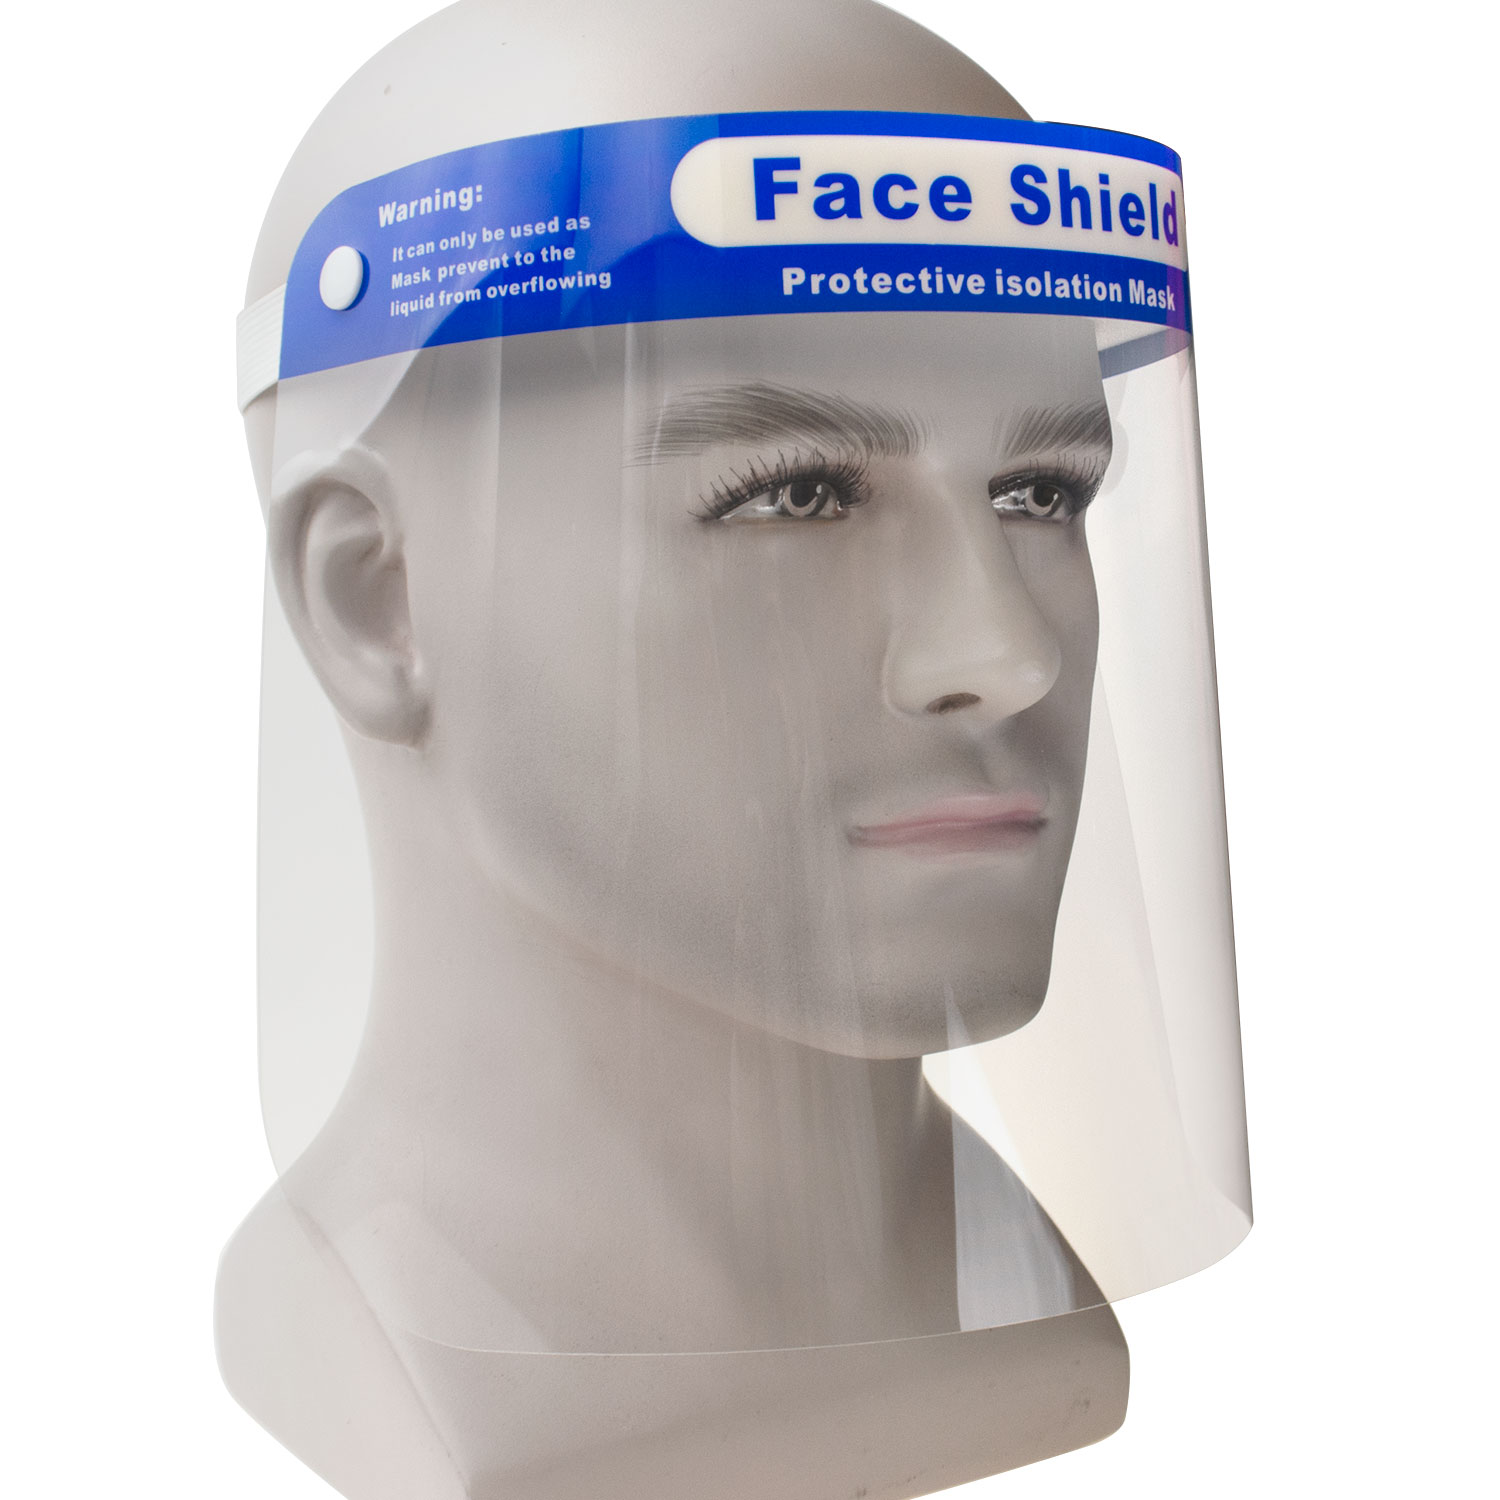 Easy Wear Protective Film MUST Be Peeled Off Transparent Plastic Face Visor Adjustable Resistant to Prevent Splashes Face Protective Shield Visor with Glasses Aspect 1 Pk